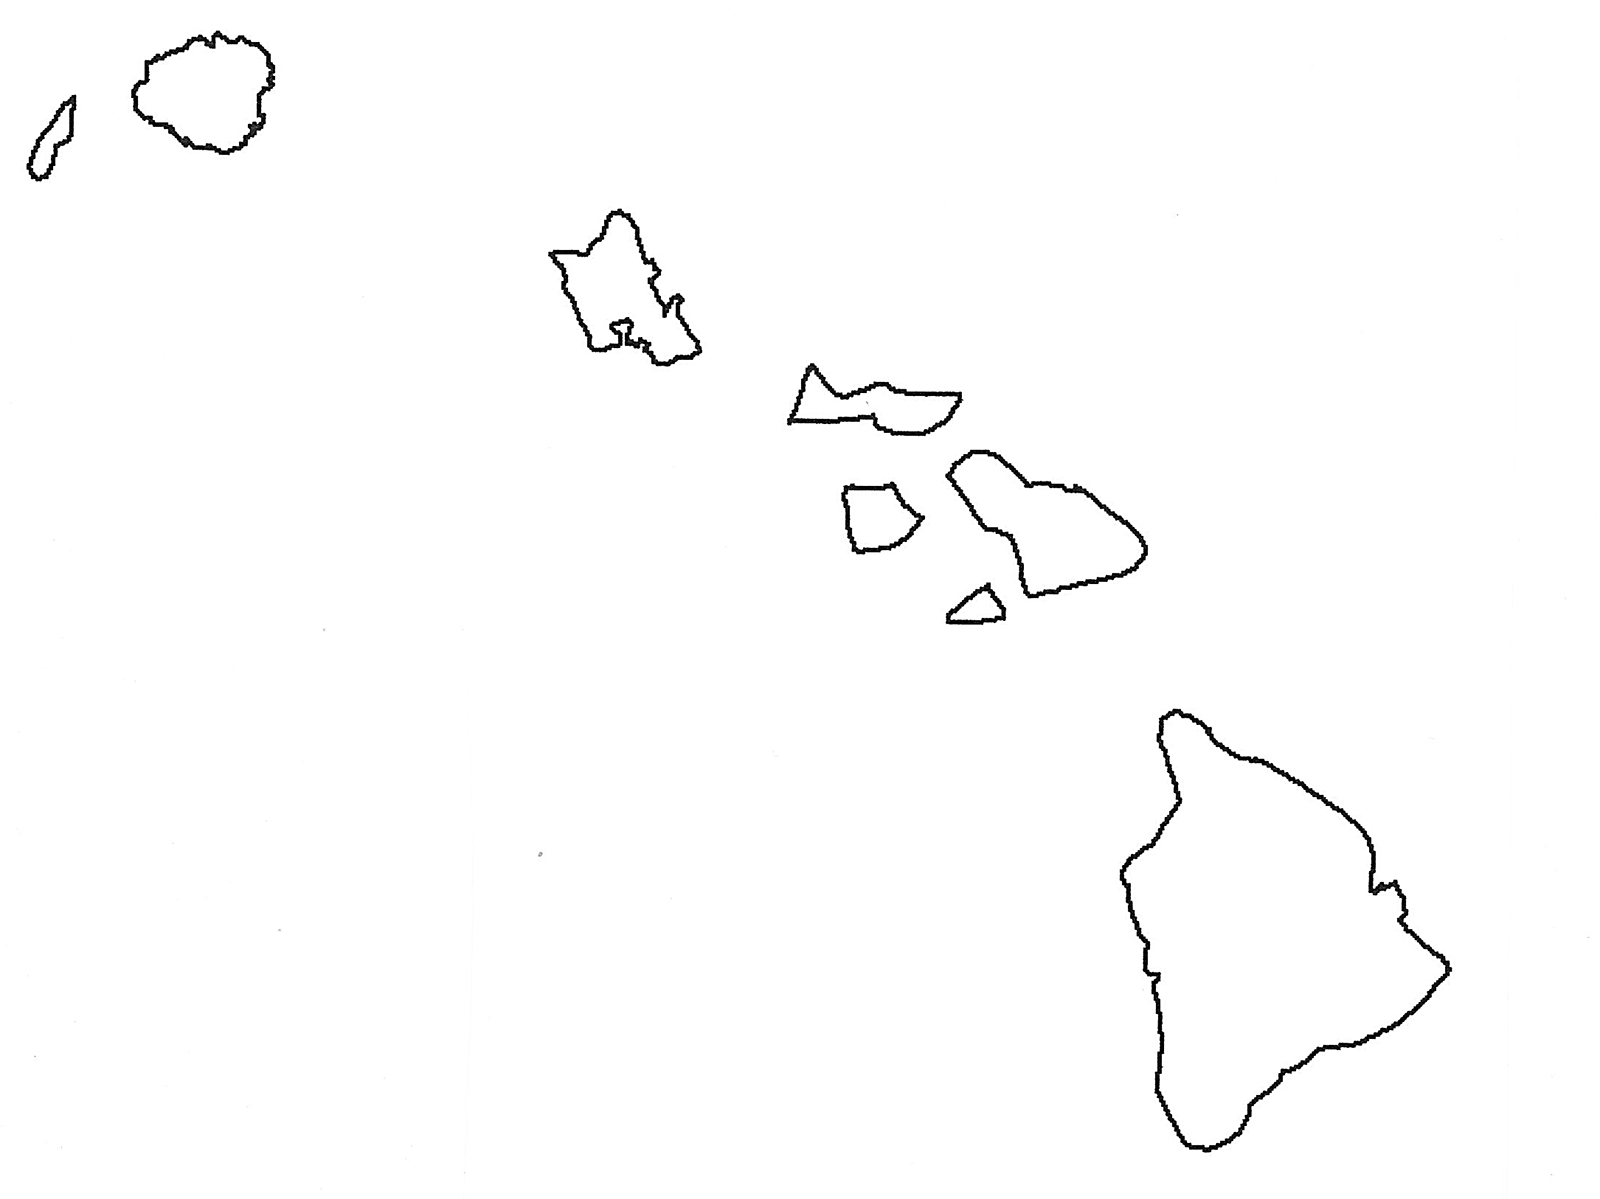 Hawaii Islands Vector At Getdrawings Com Free For Personal Use